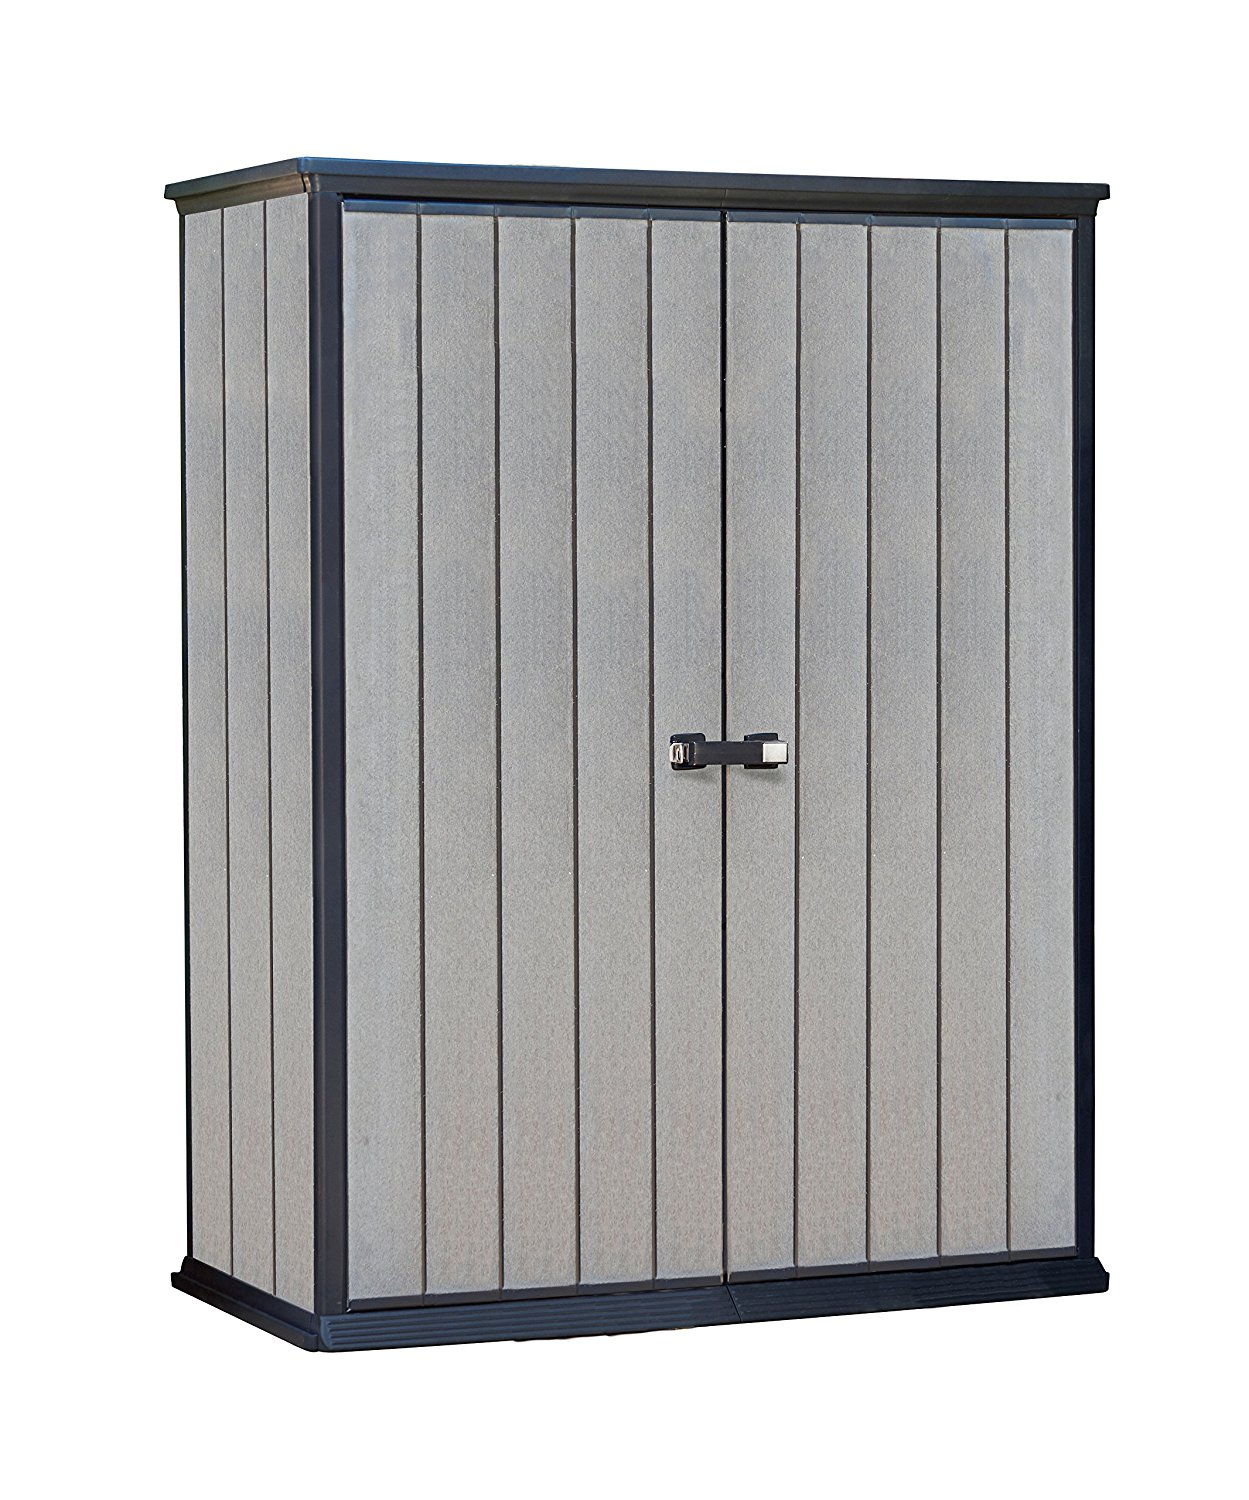 Keter High Store Tool Shed